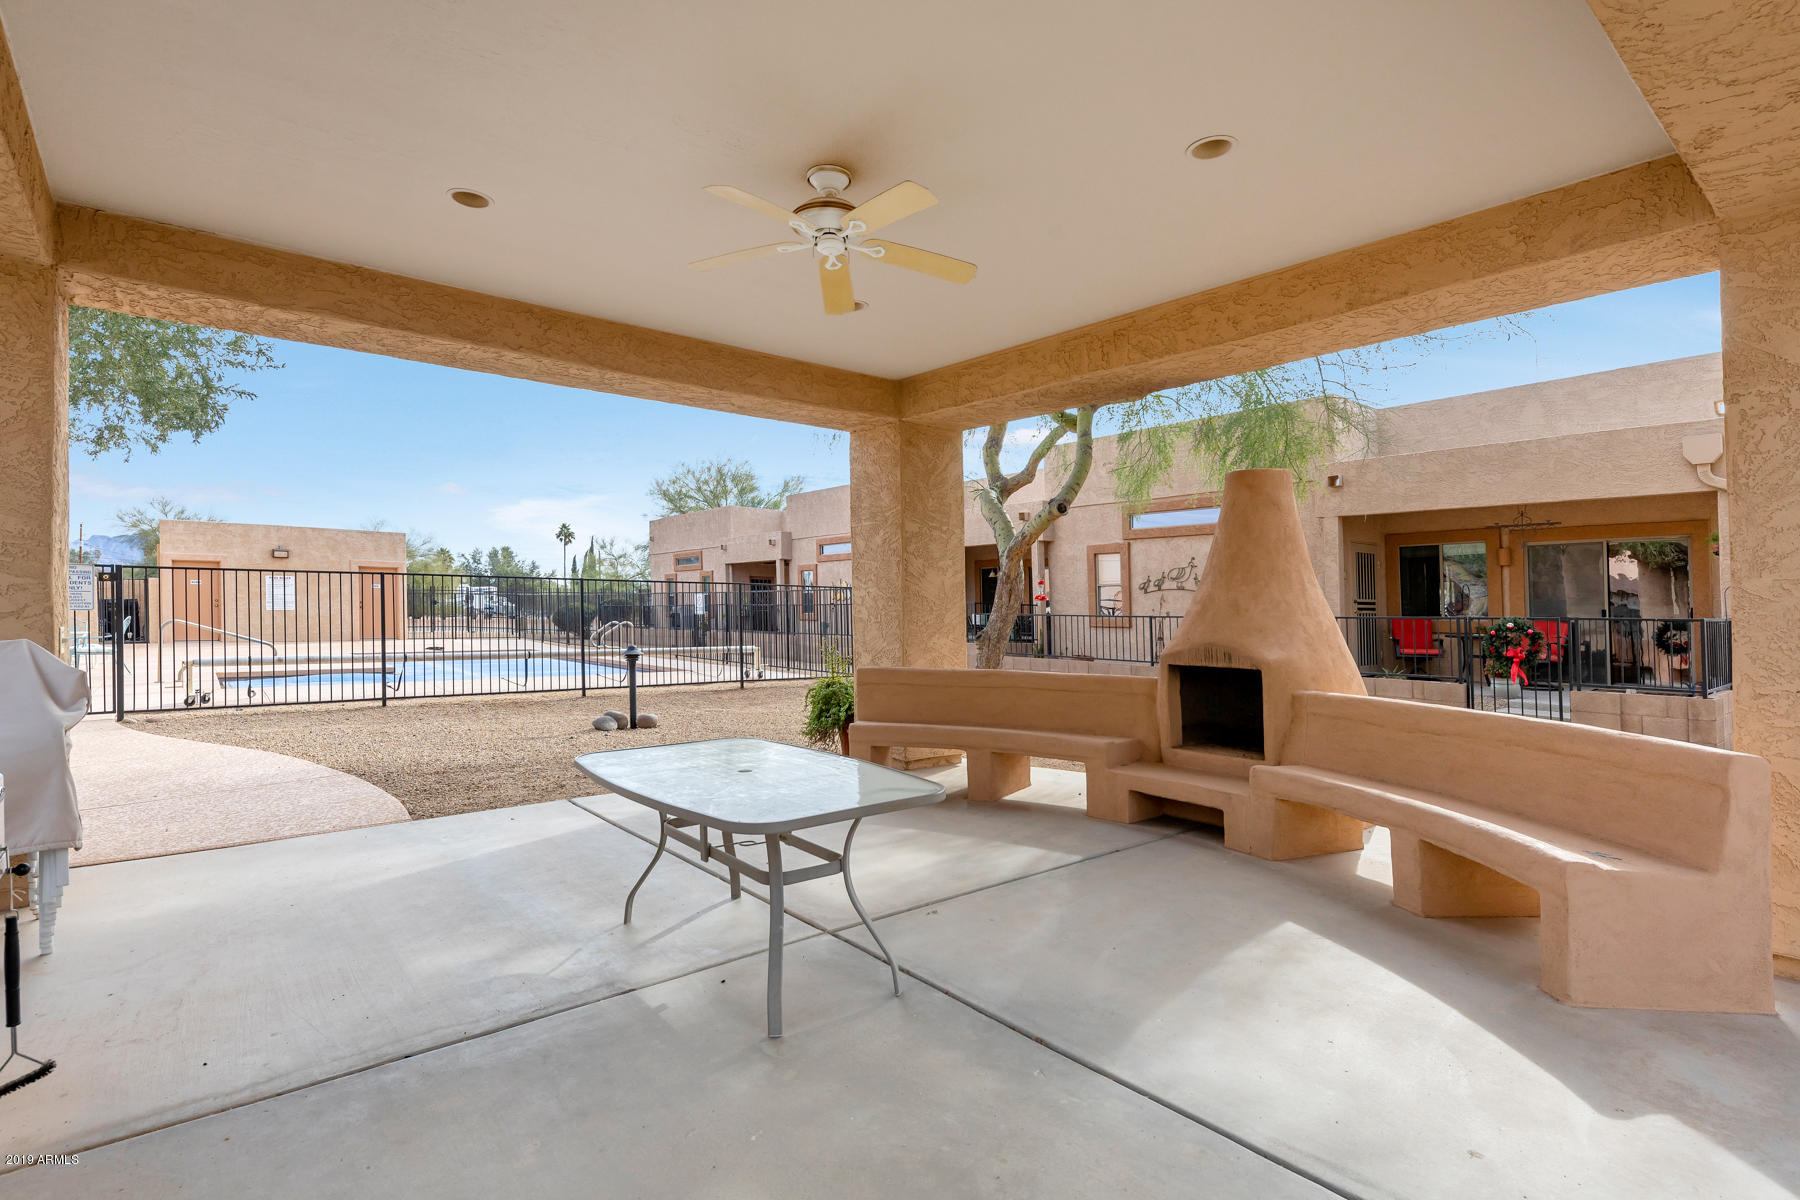 MLS 5865813 876 S LAWTHER Drive, Apache Junction, AZ 85120 Apache Junction AZ Condo or Townhome